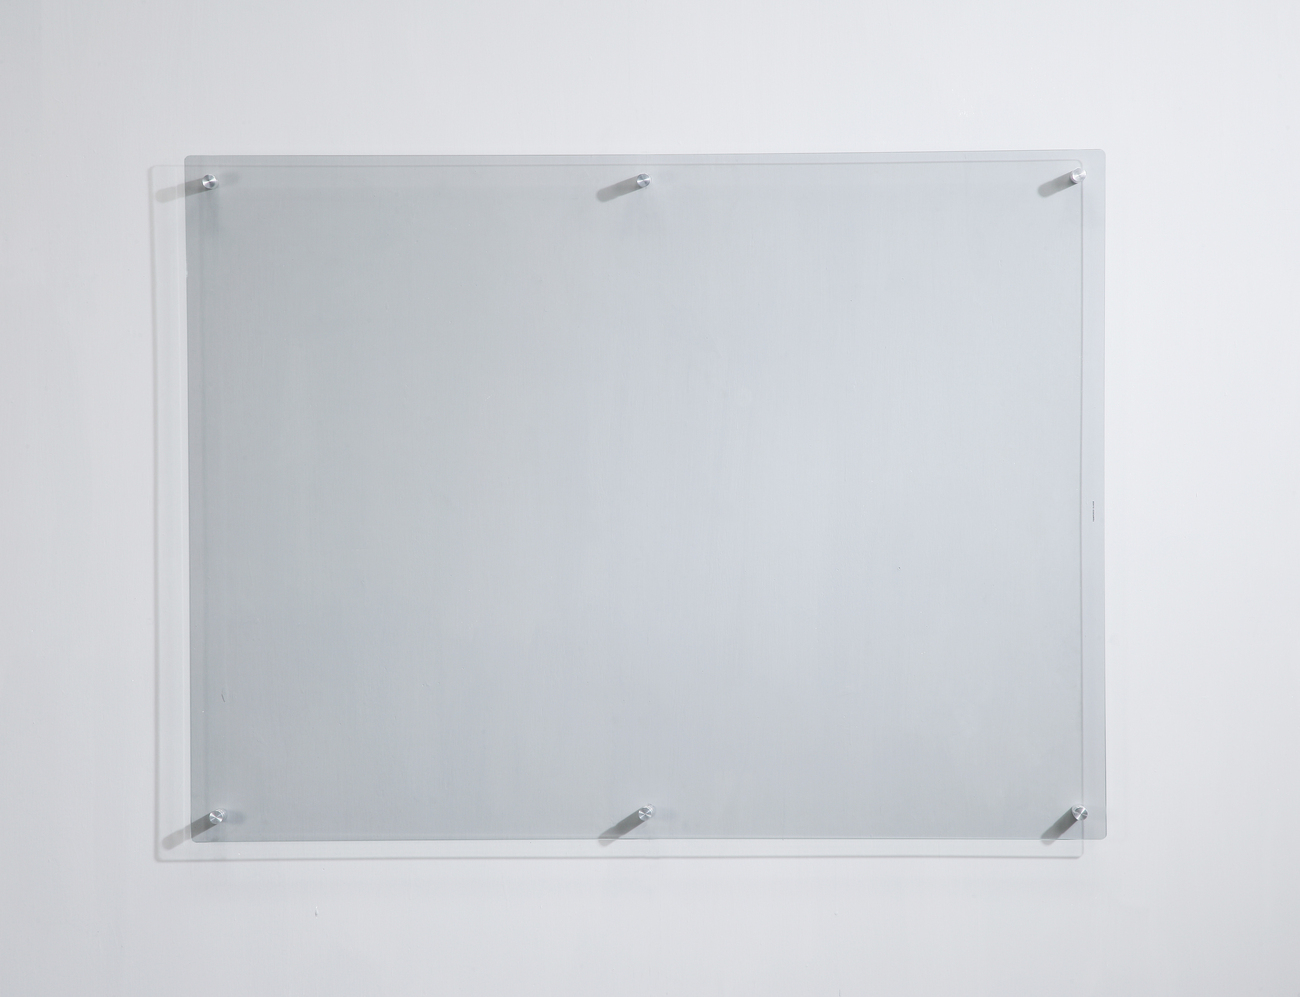 "35 ½"" x 47 ¼"" Clear Glass Dry-Erase Board"